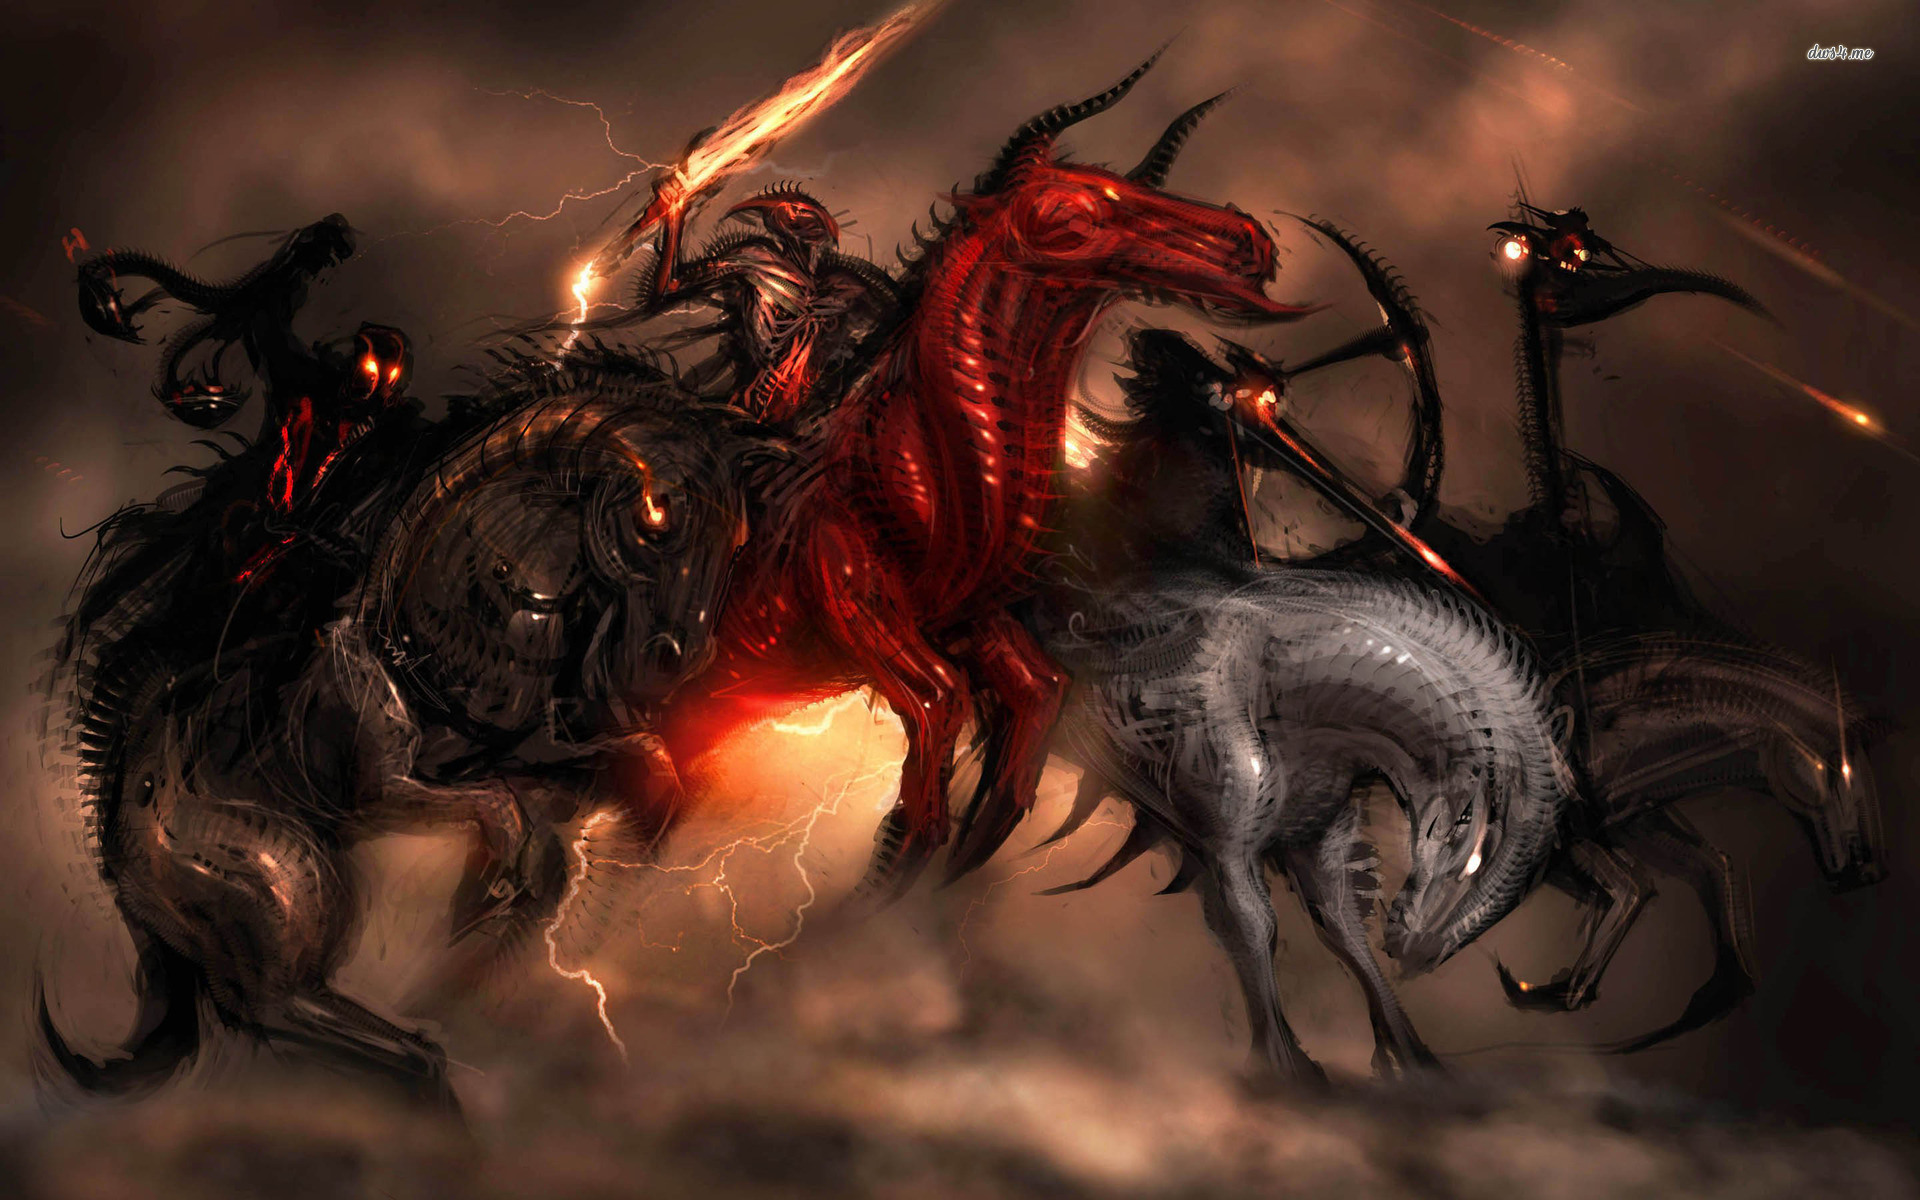 The Last Days The Four Horsemen Of The Apocalypse Video Prophecy 1920x1200